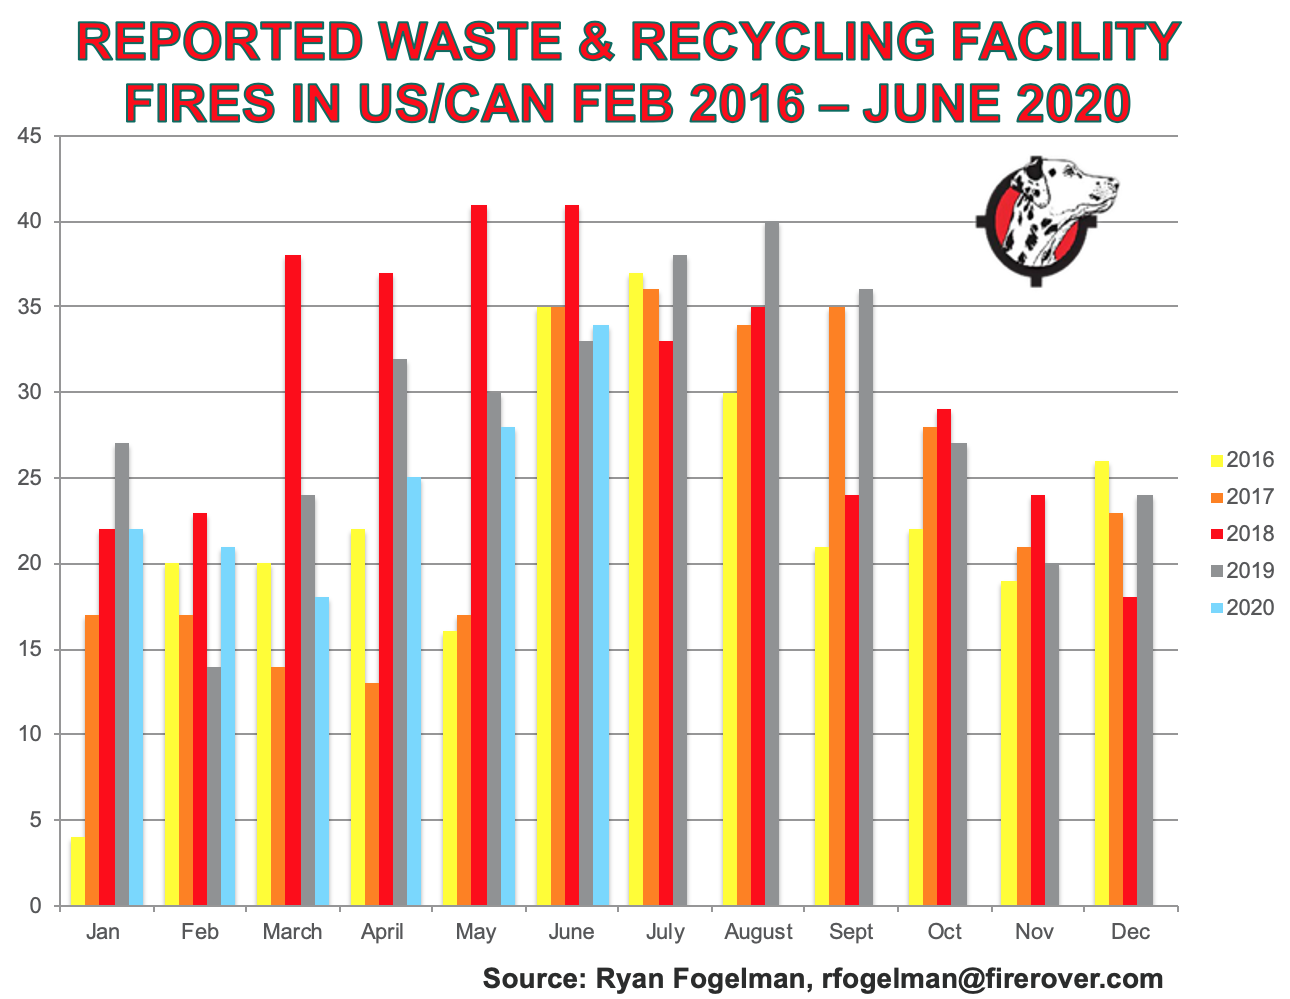 A bar chart showing recycling facility fires from years 2016 to 2020.